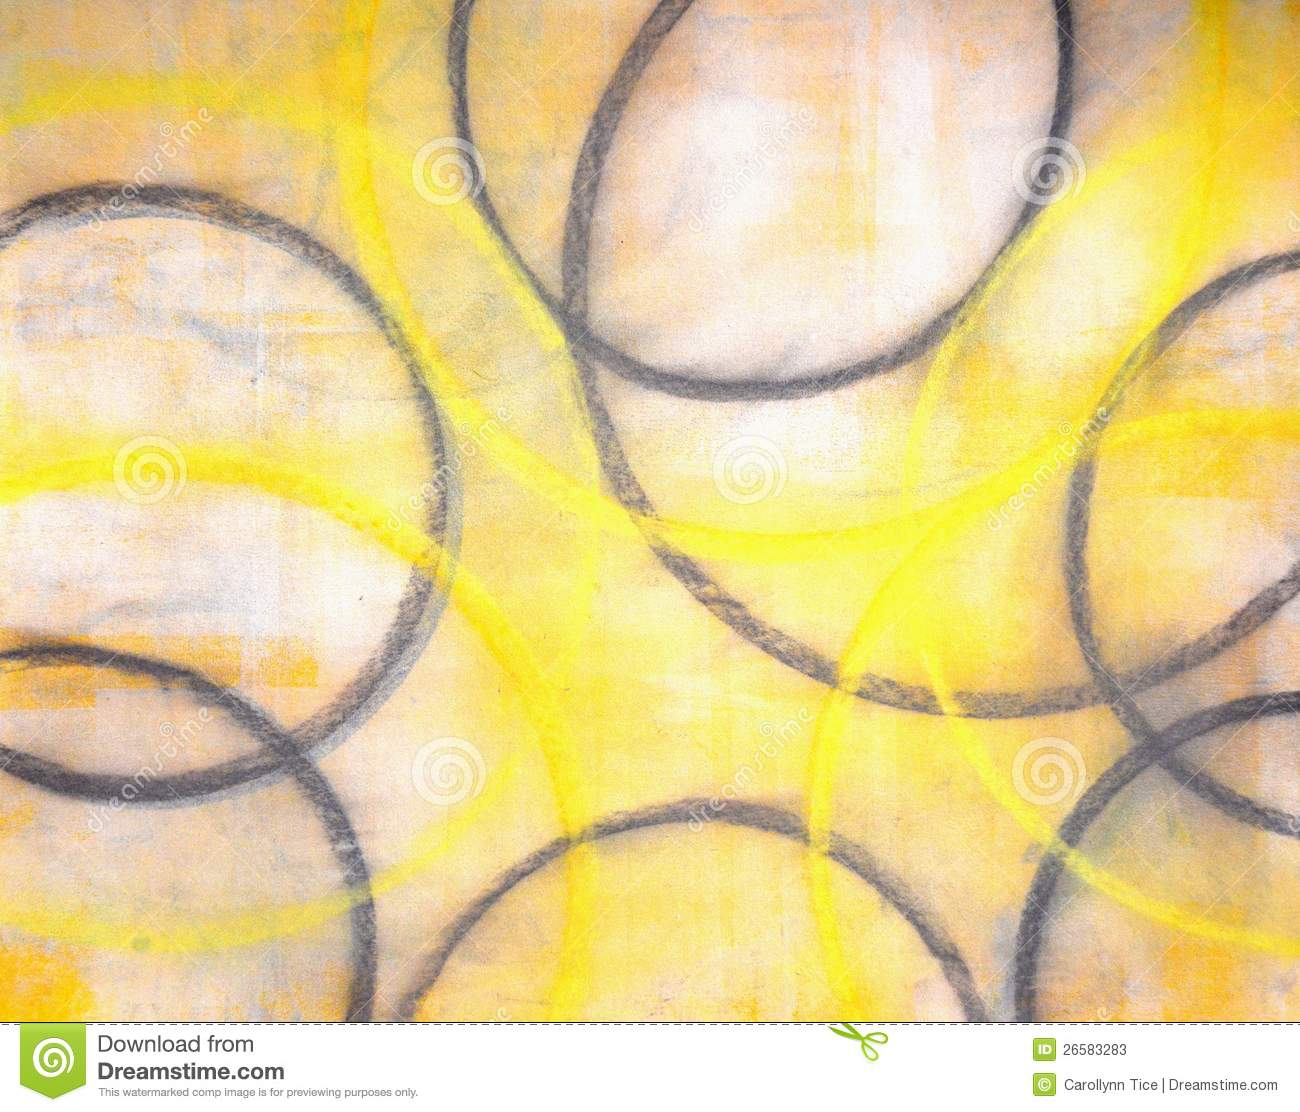 Grey And Yellow Abstract Art Painting Stock Illustration ...Yellow Abstract Painting